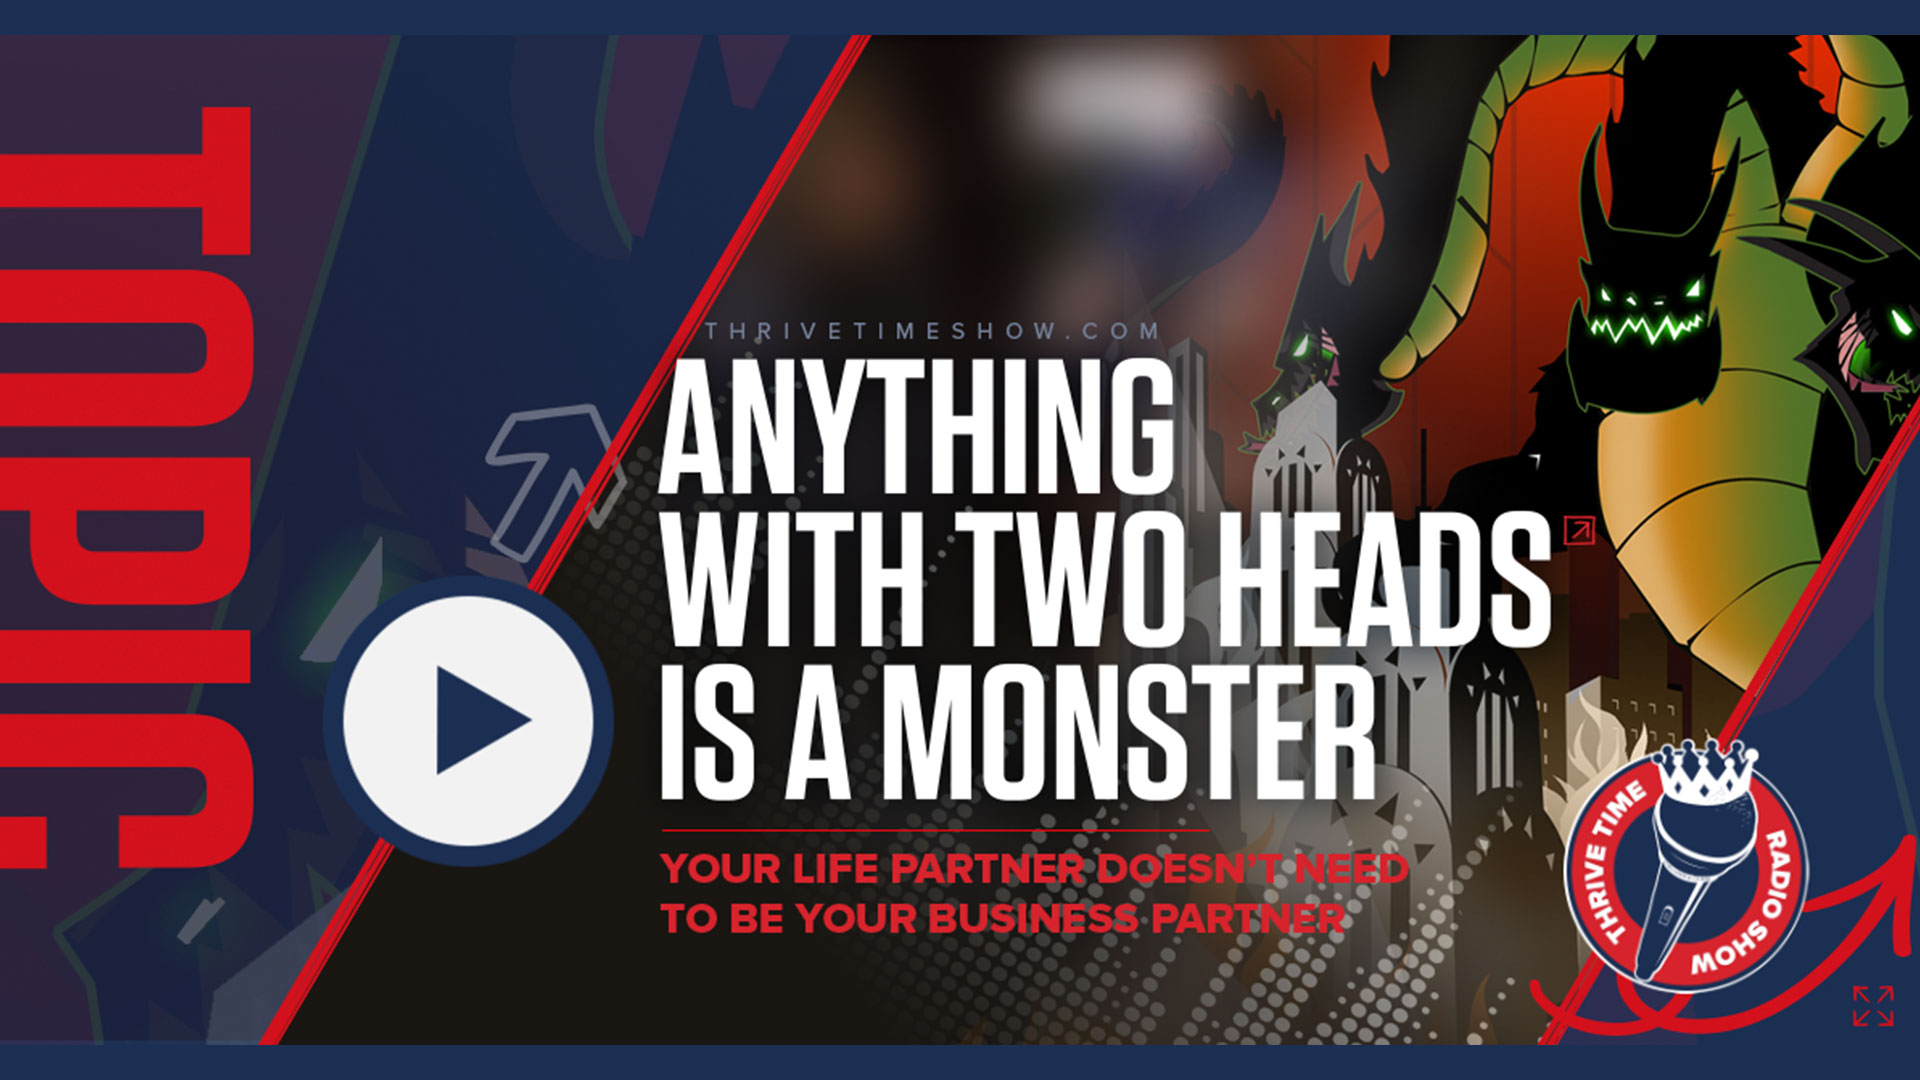 Youtube Anything With Two Heads Is A Monster Thrivetime Show